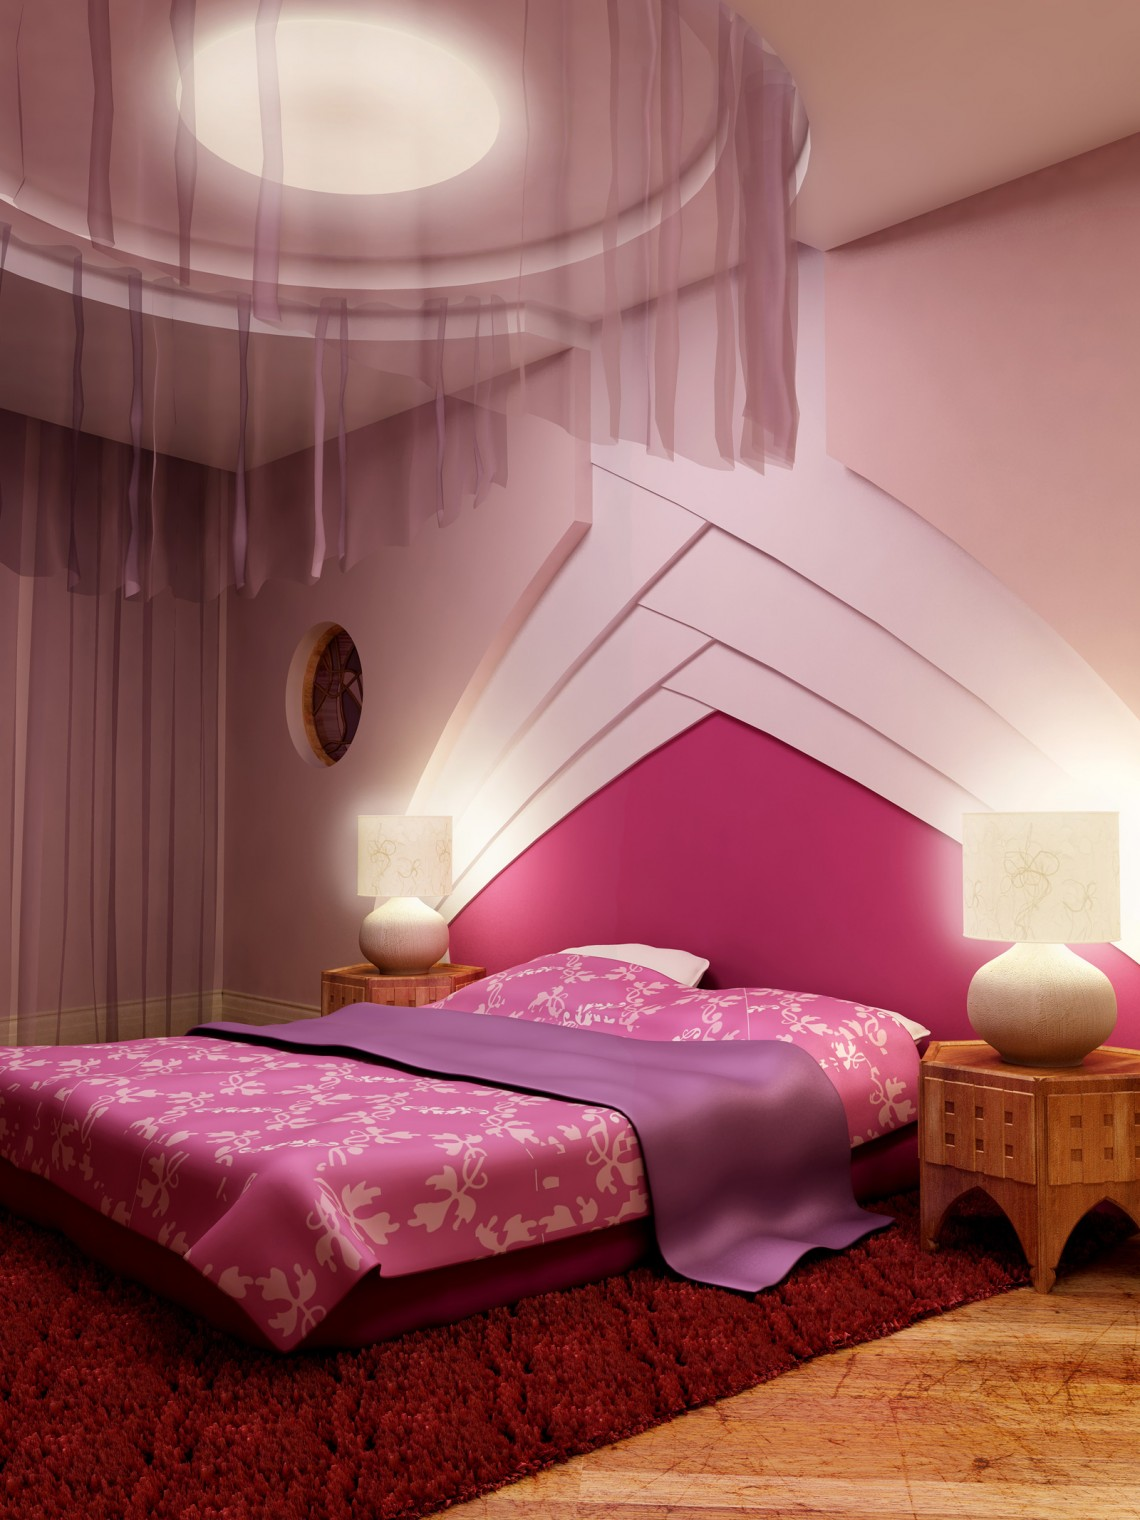 Bedroom No Ceiling Light 60 Classy And Marvelous Bedroom Wall Design Ideas